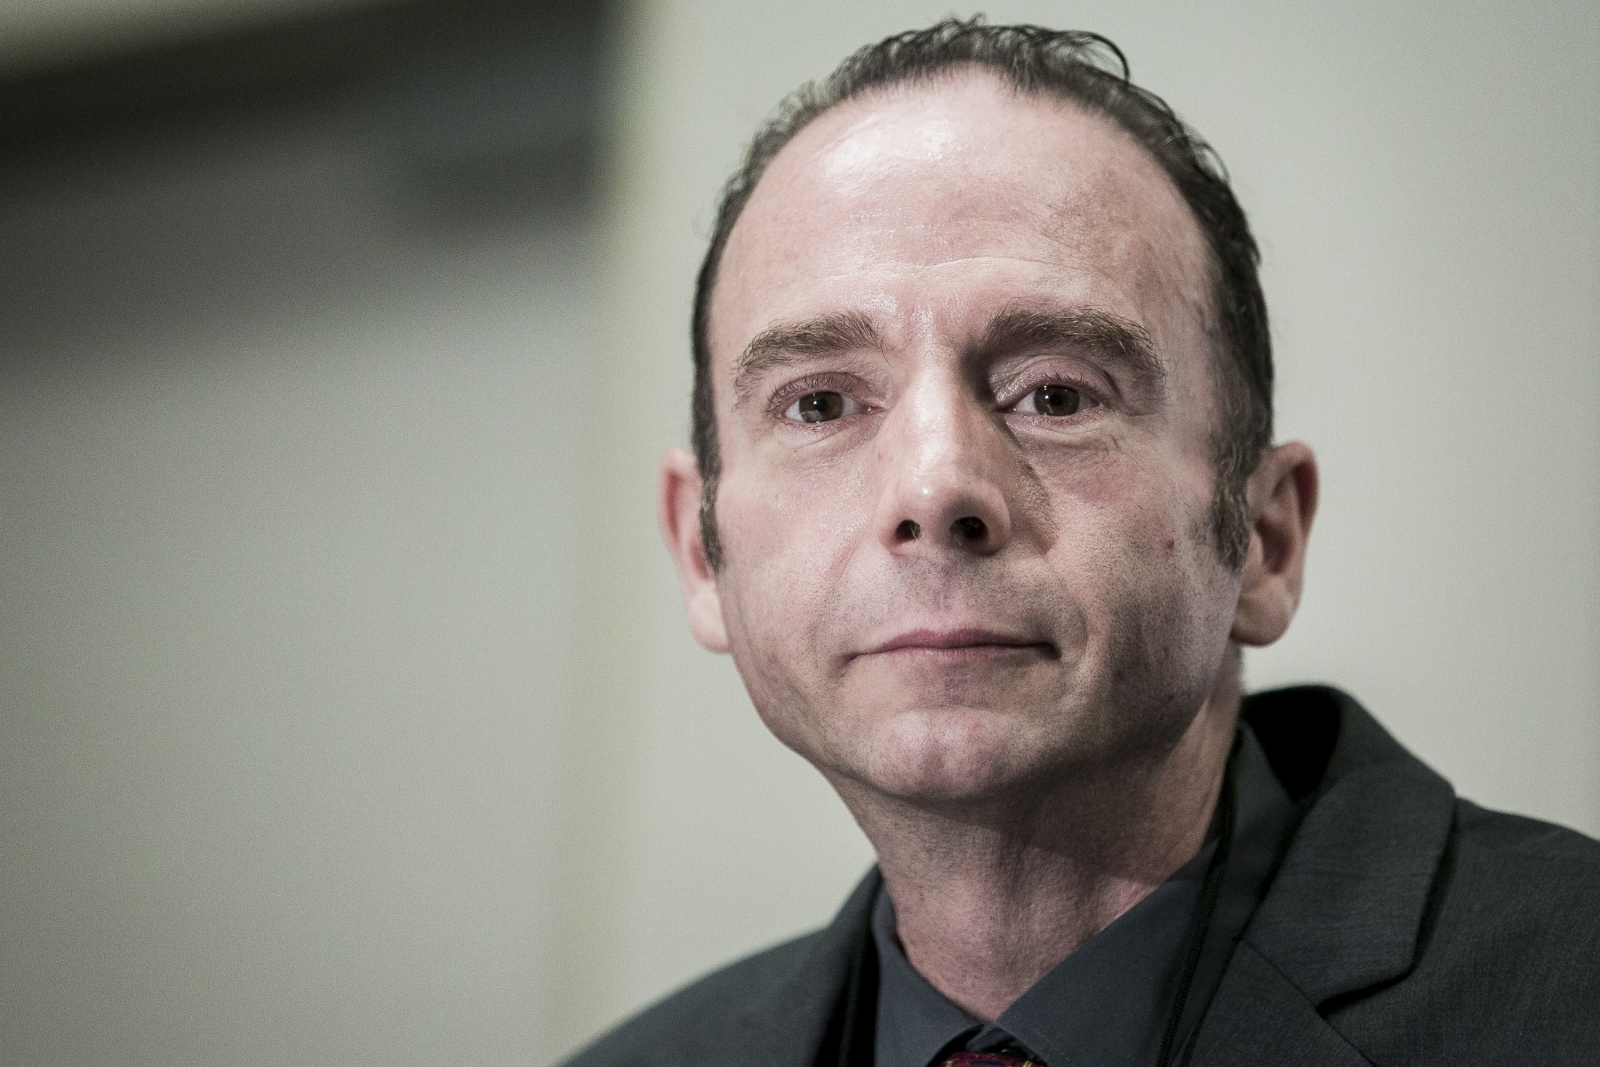 Timothy Ray Brown: World's only person cured of HIV speaks about stem cell transplant experience - timothy-ray-brown